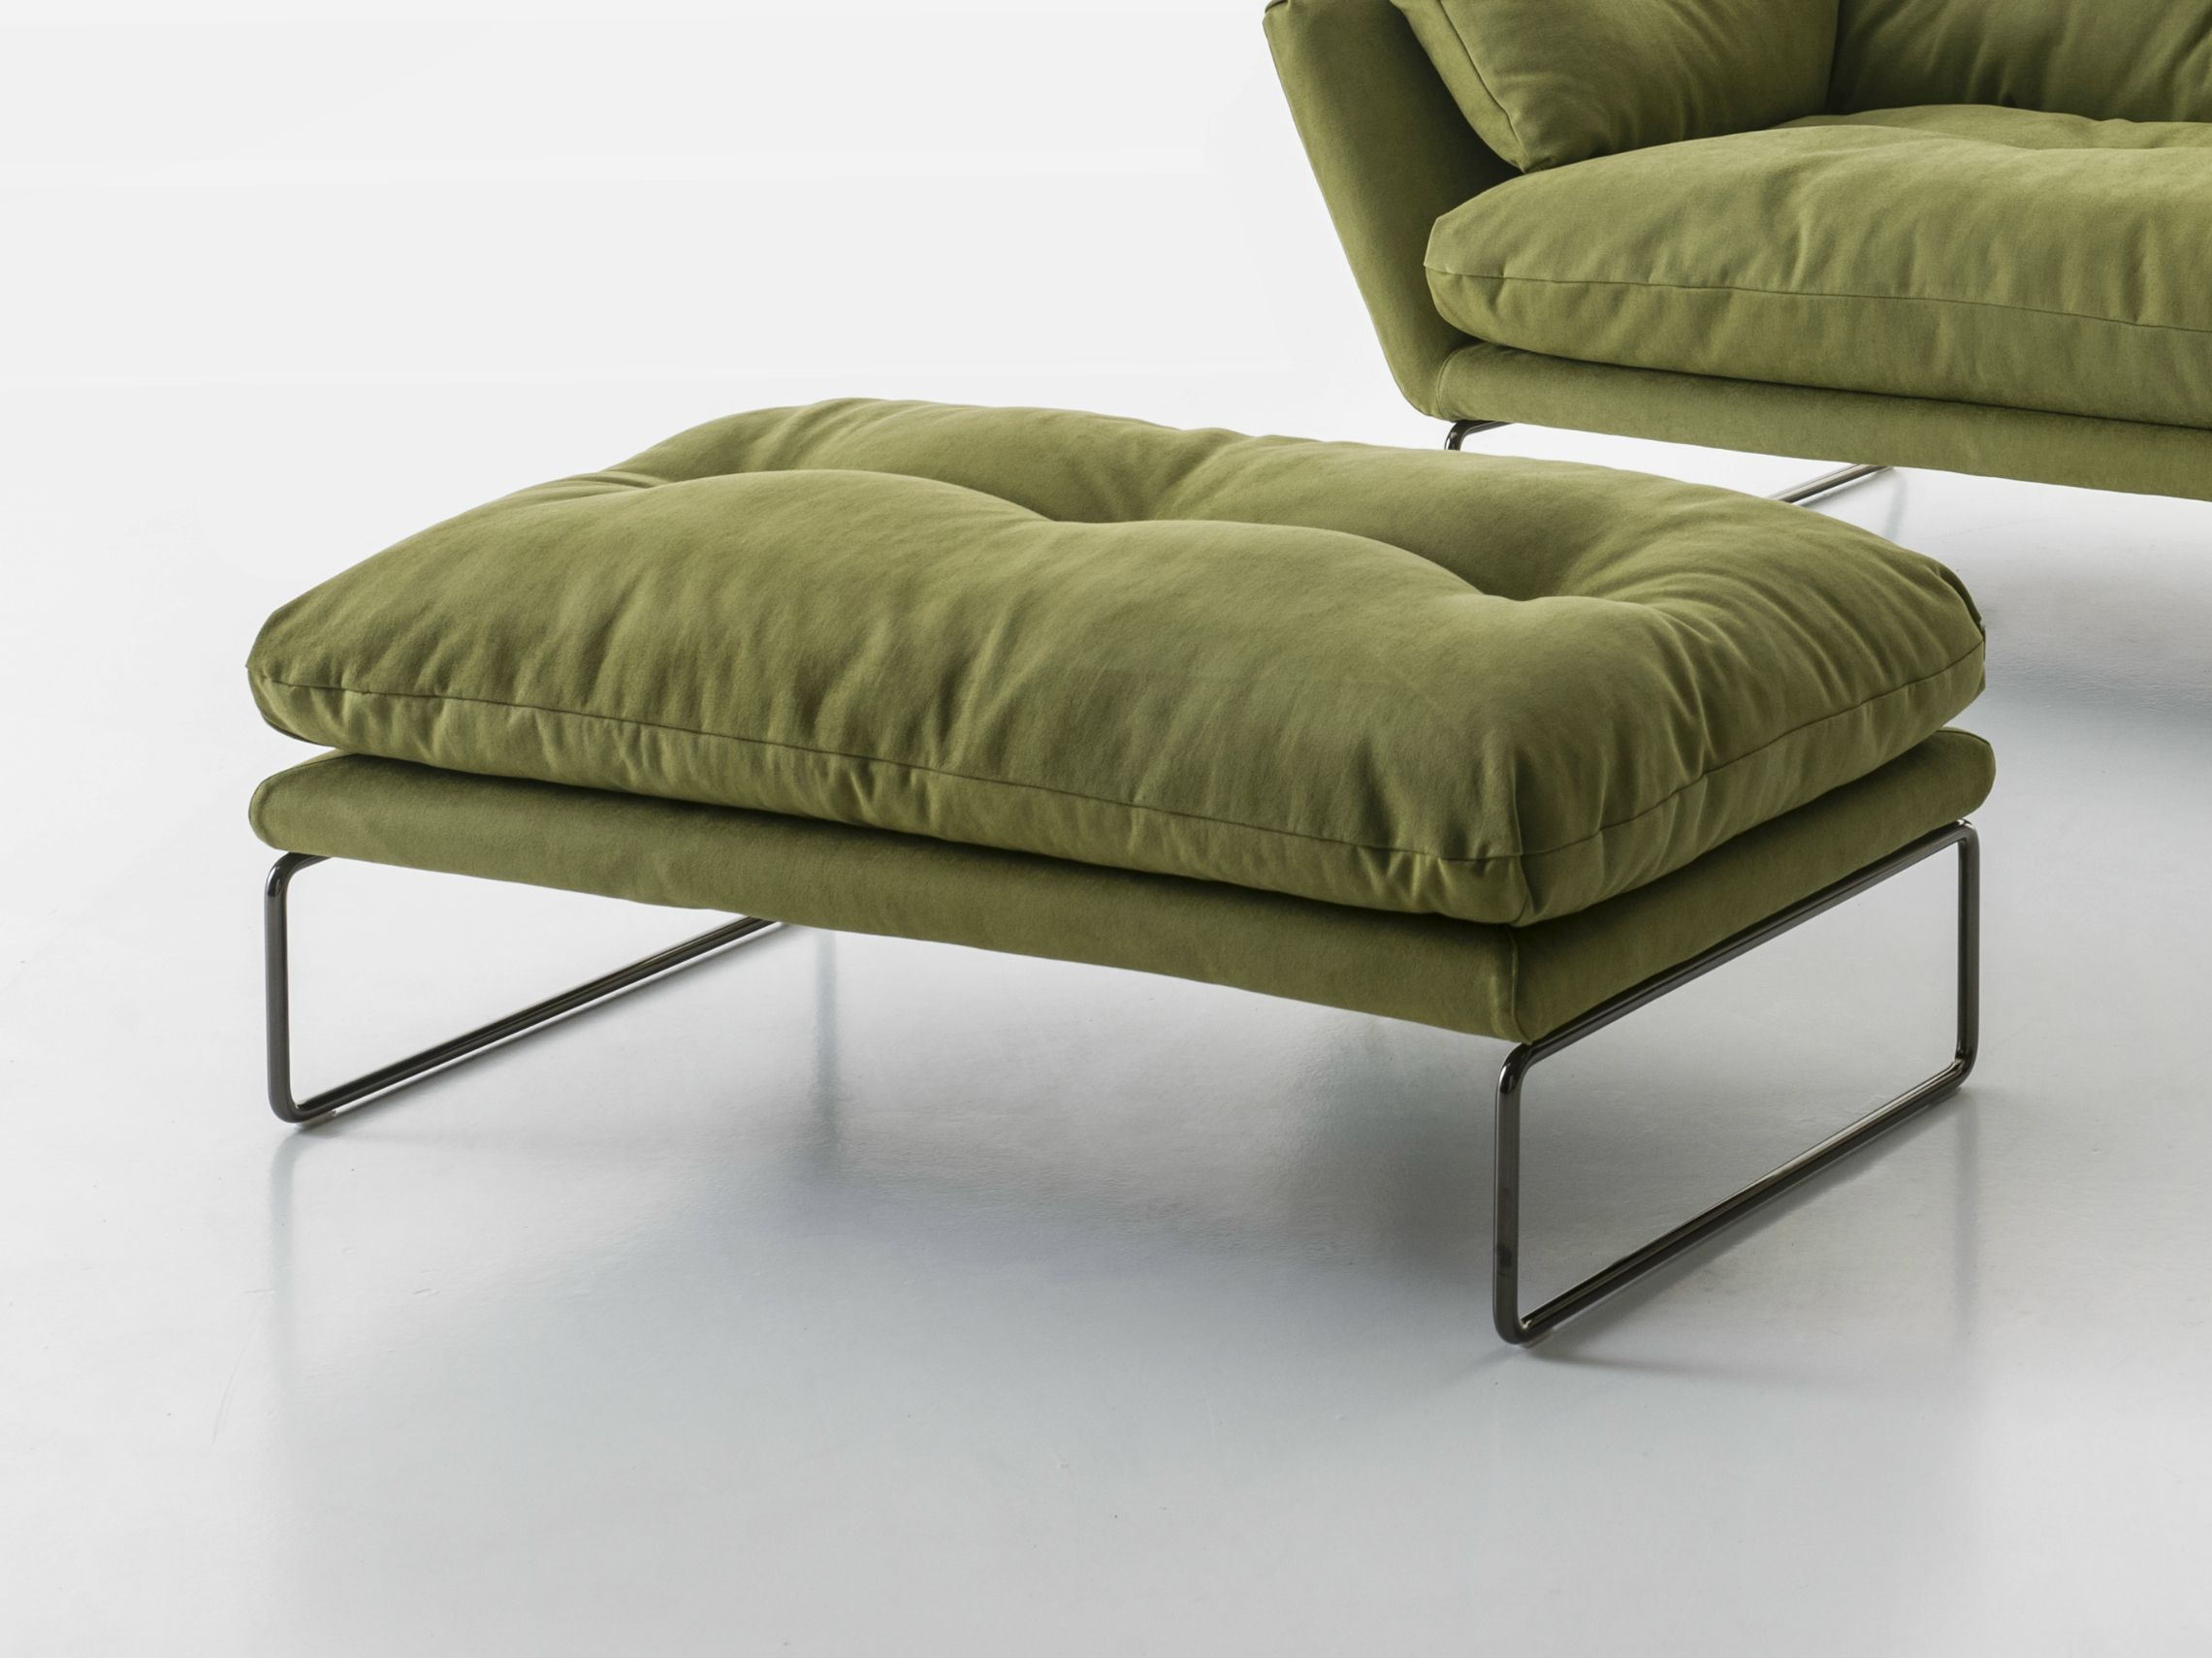 New York Suite Sofa By Nido Living Made To Order Designer Furniture From Dering Hall S Collection Of Contemporary Sofas Sectionals